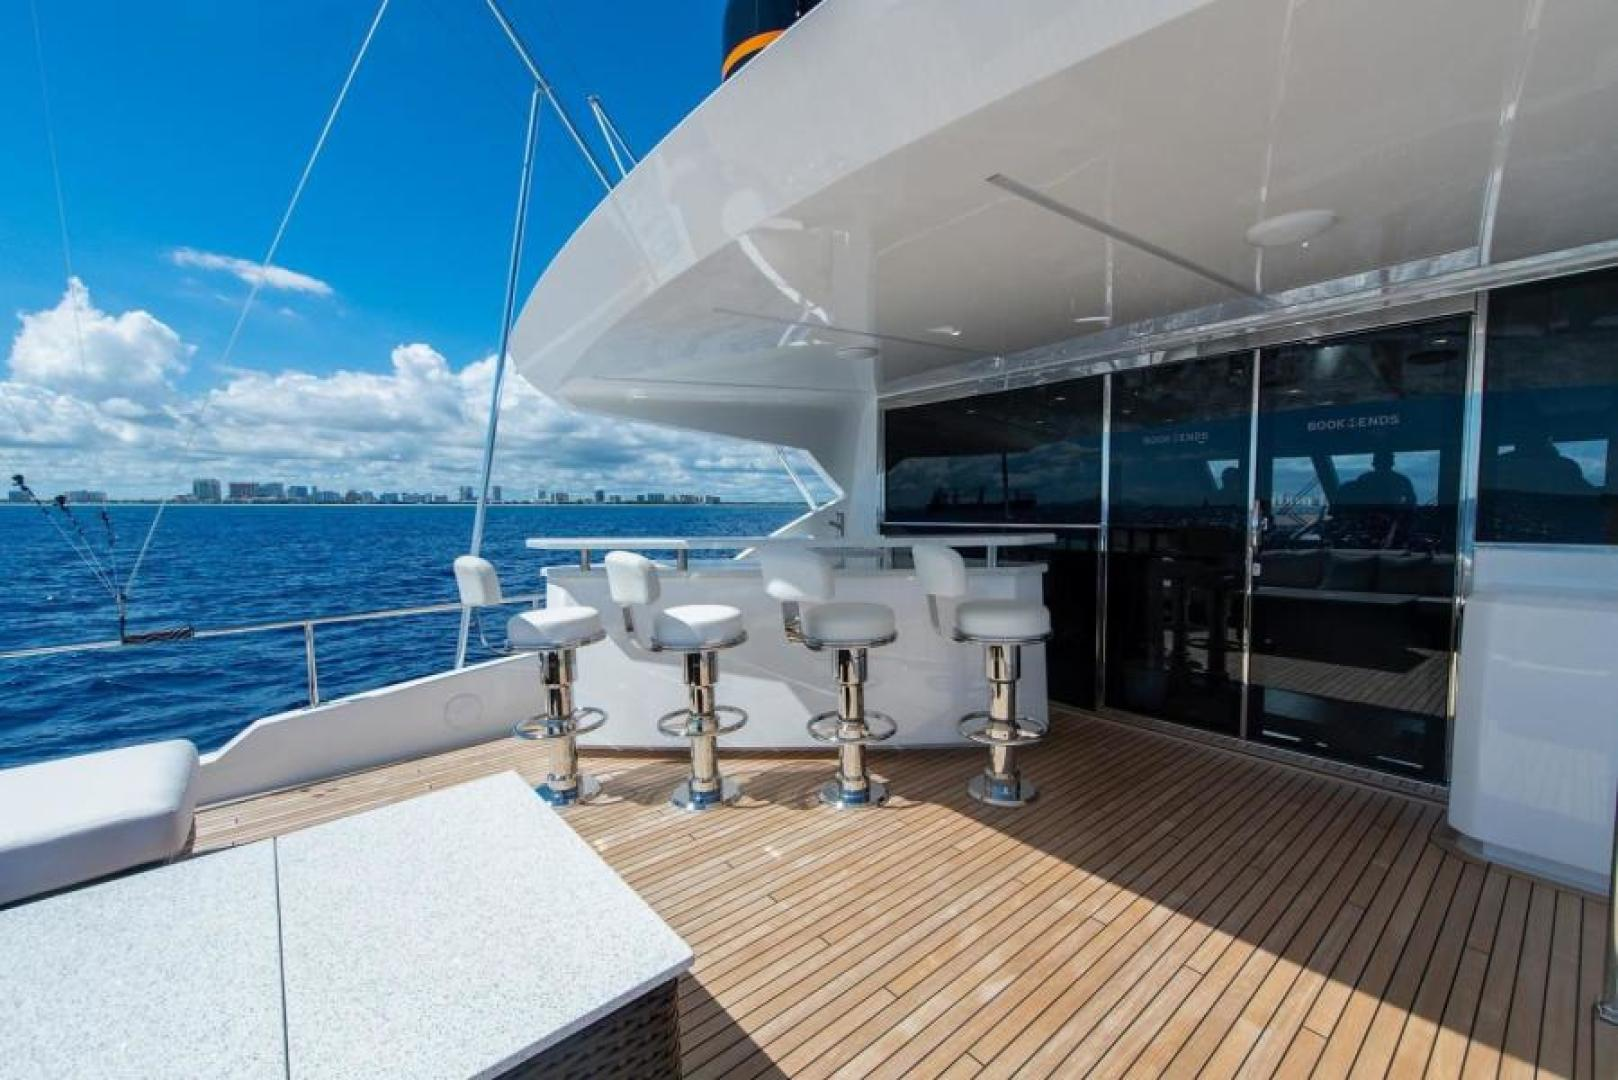 Viking-Motoryacht Enclosed Flybridge 2018-BOOK ENDS Fort Lauderdale-Florida-United States-Enclosed Bridge Aft Deck-1470638 | Thumbnail